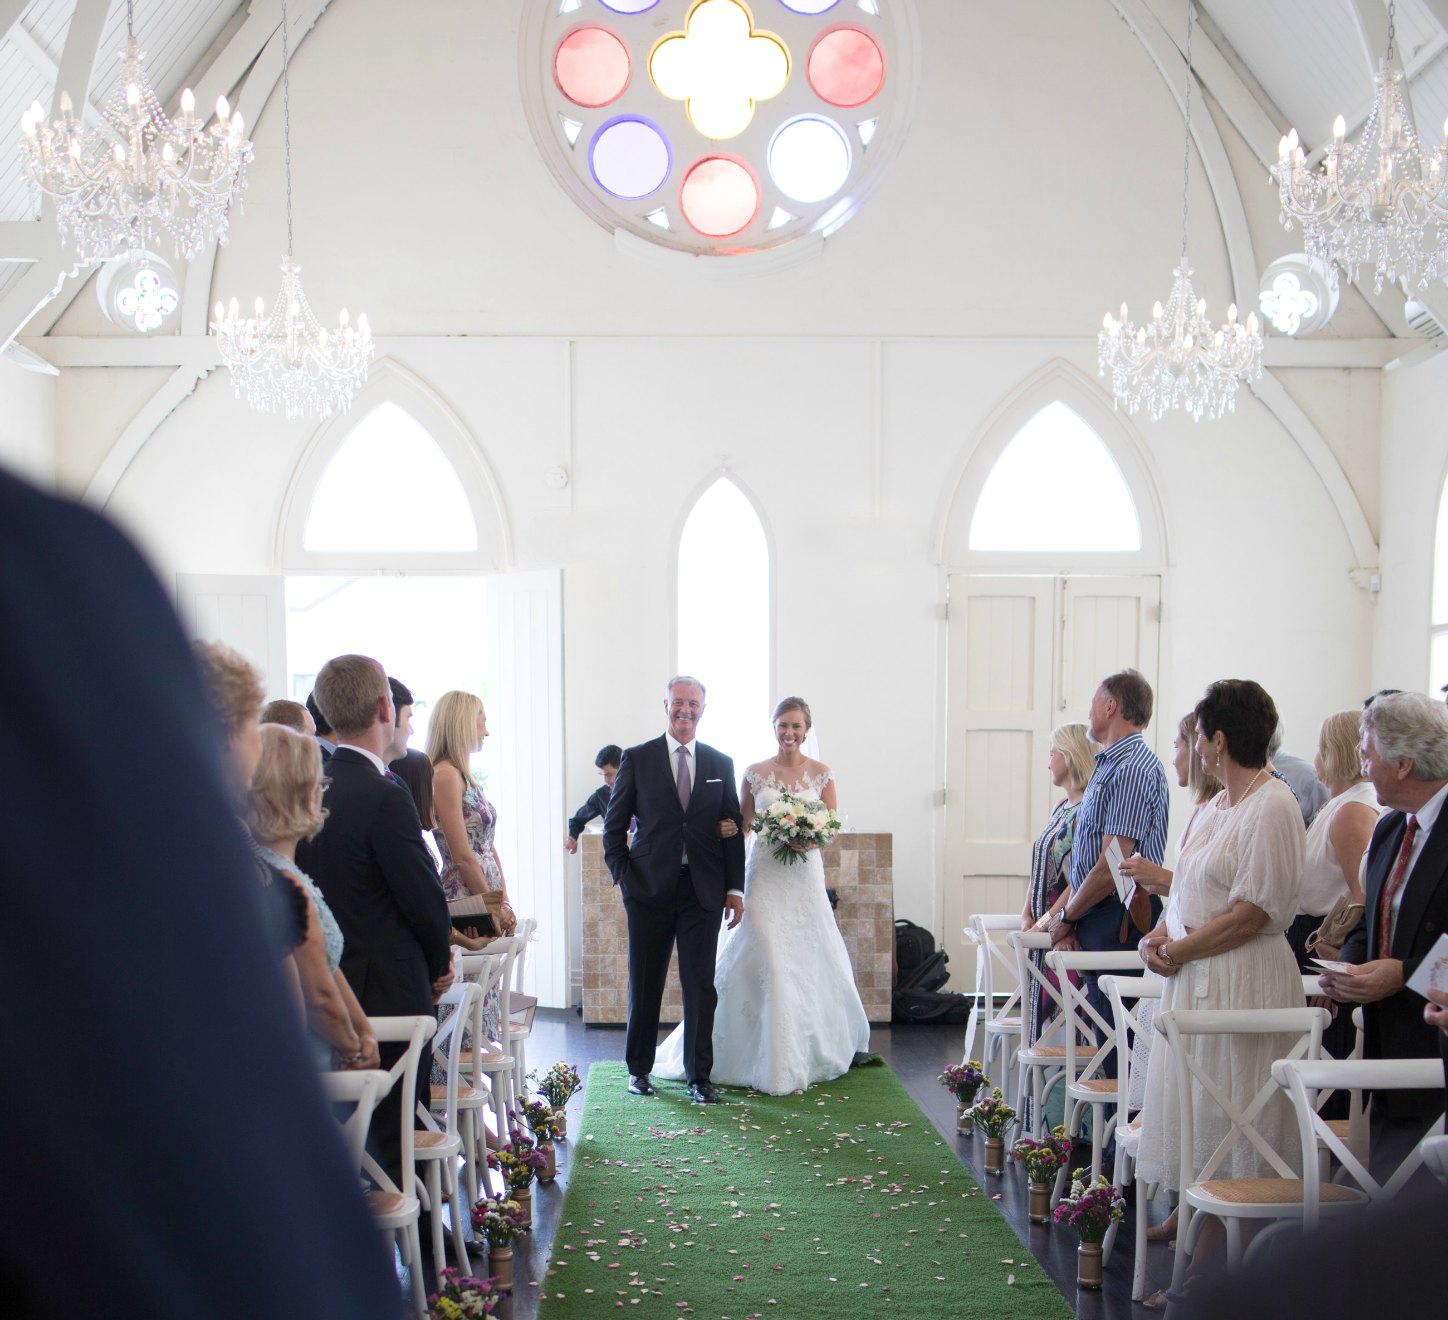 father of the bride walking down the aisle wedding photo high church brisbane pretty white chapel